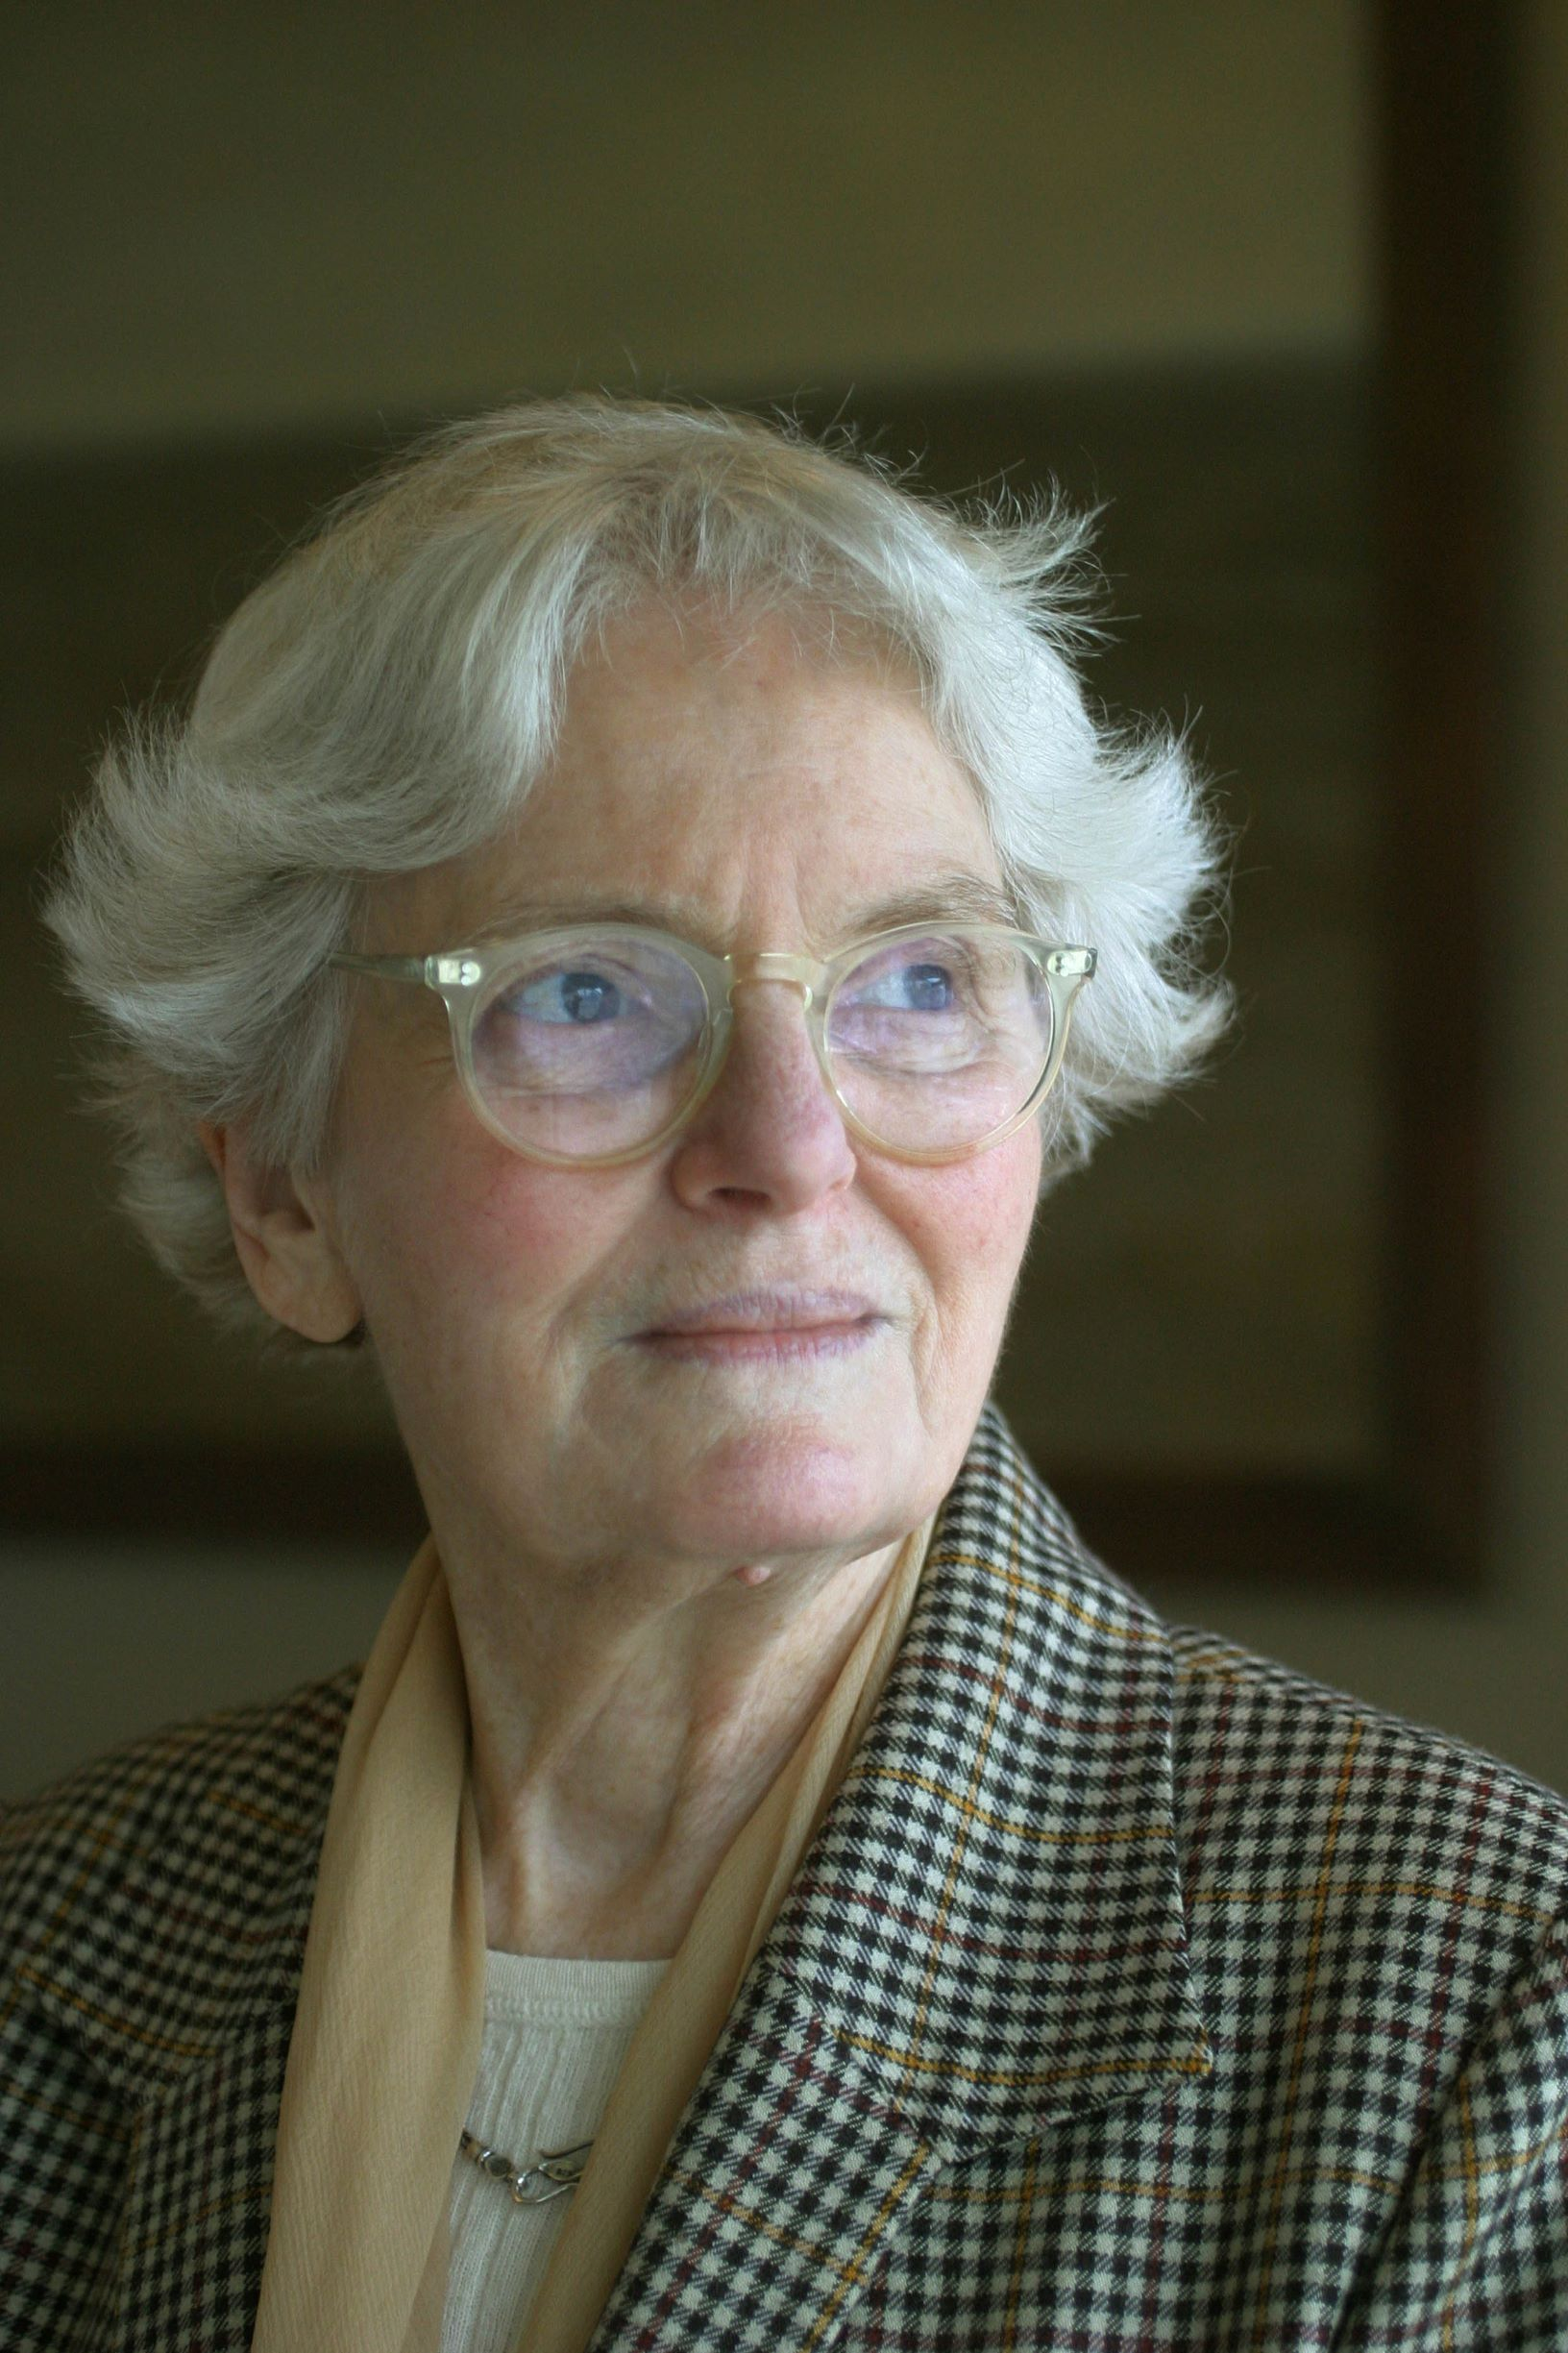 Denise Scott Brown, 2005. Photo by Frank Hanswijk